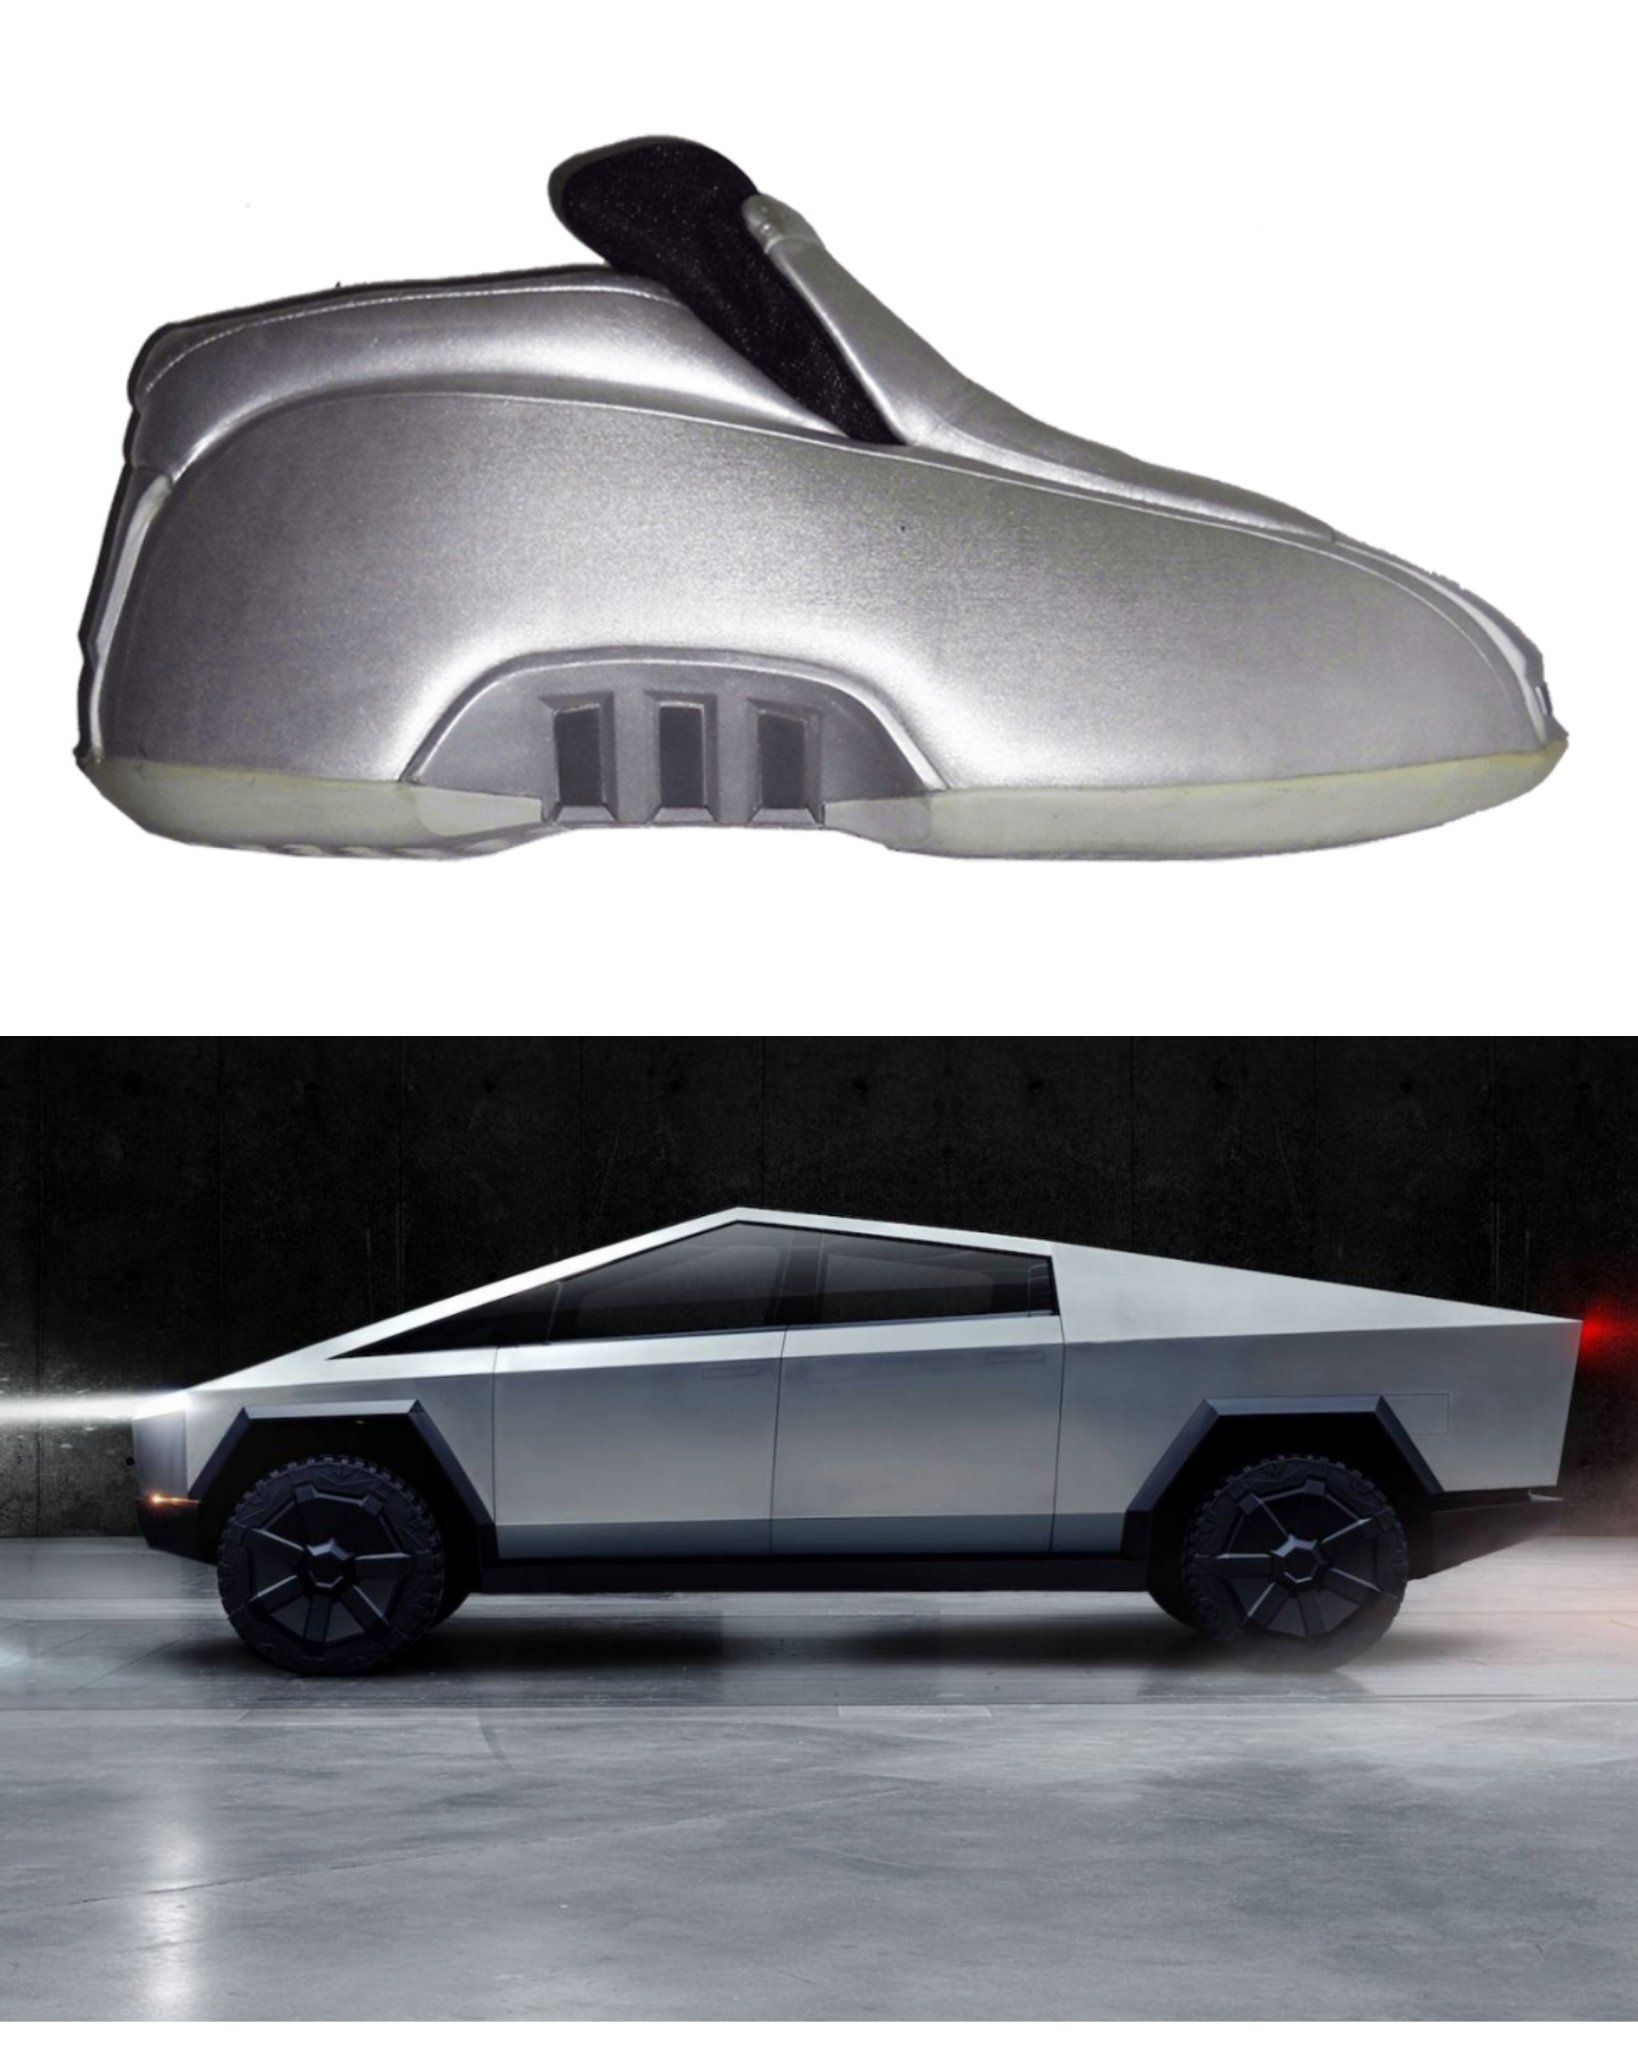 Tesla shoes - meme